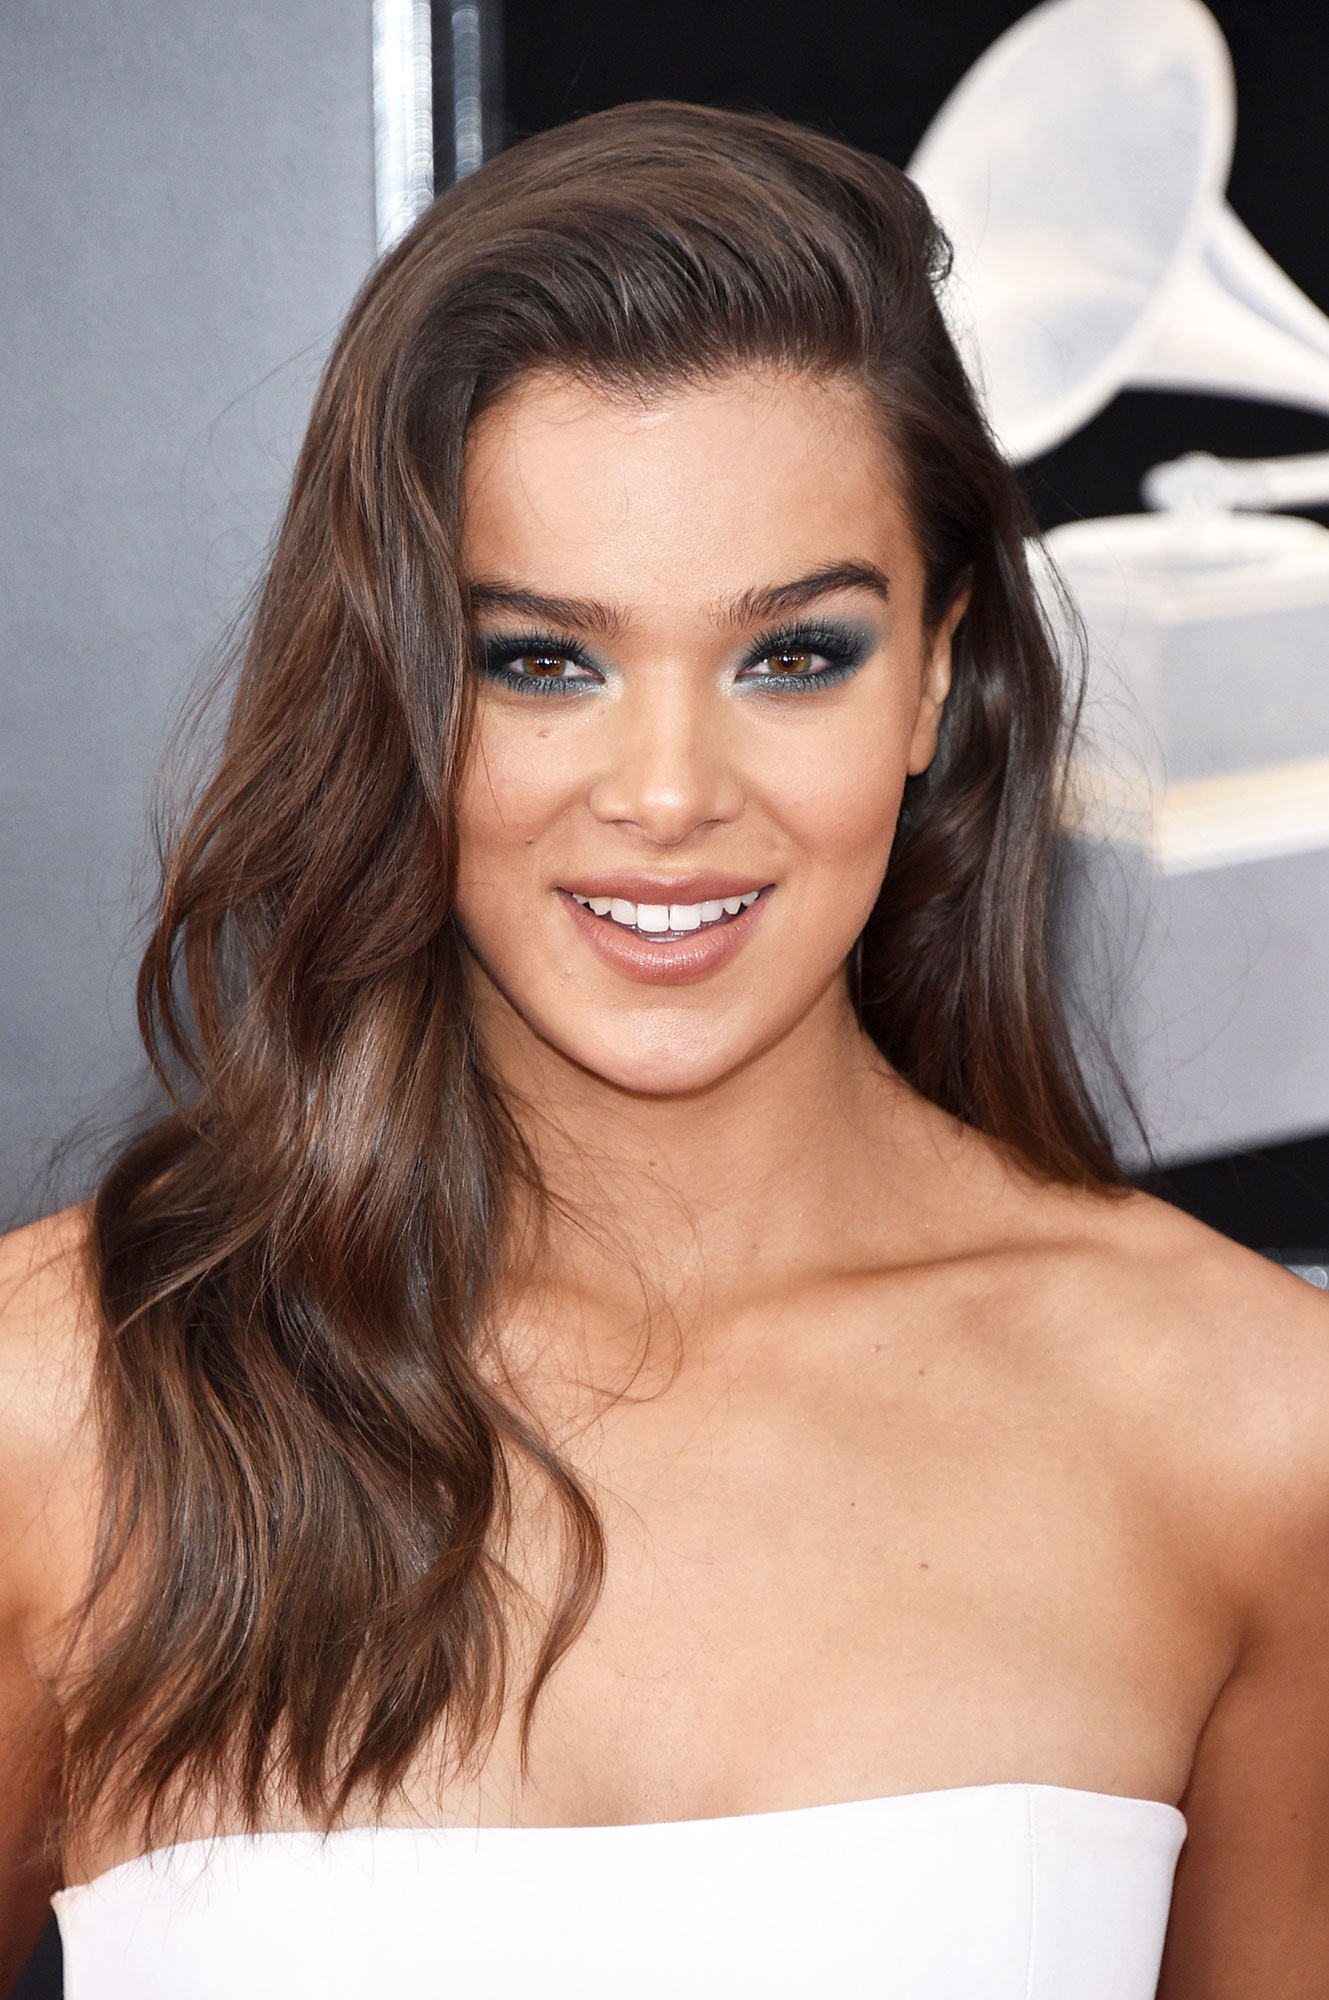 Hailee Steinfeld - The Bumblebee actress' waves at the 2018 Grammys might have looked effortless, but they certainly were not. For loose hold that lasts hairstylist Gregory Russell lightly misted John Frieda Luxurious Volume Forever Full Hairspray onto the section then brushed through before waving with a 1.5 inch flat iron.